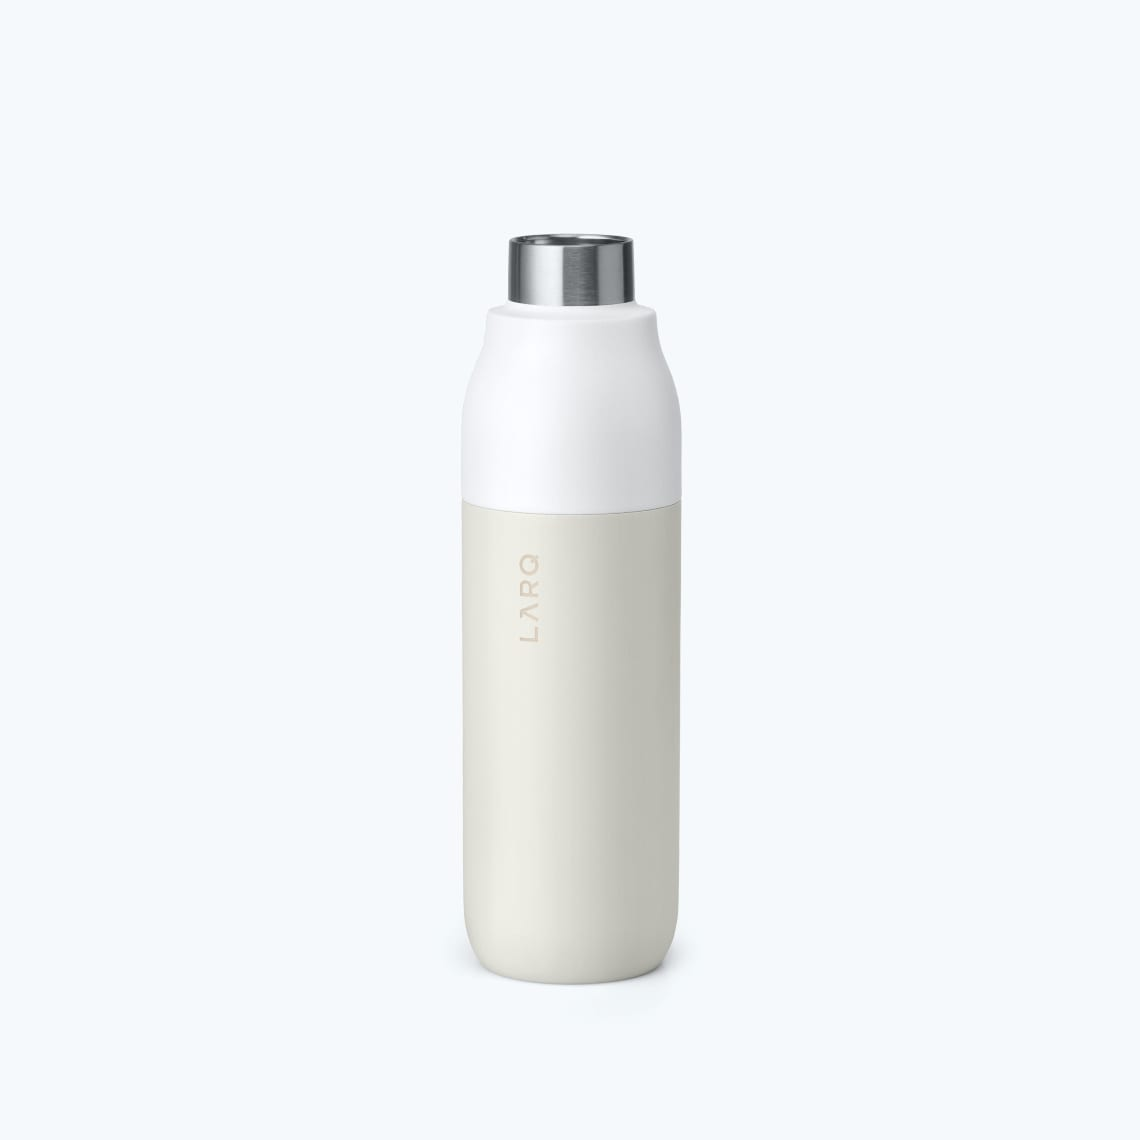 LARQ Bottle Granite White main alternative